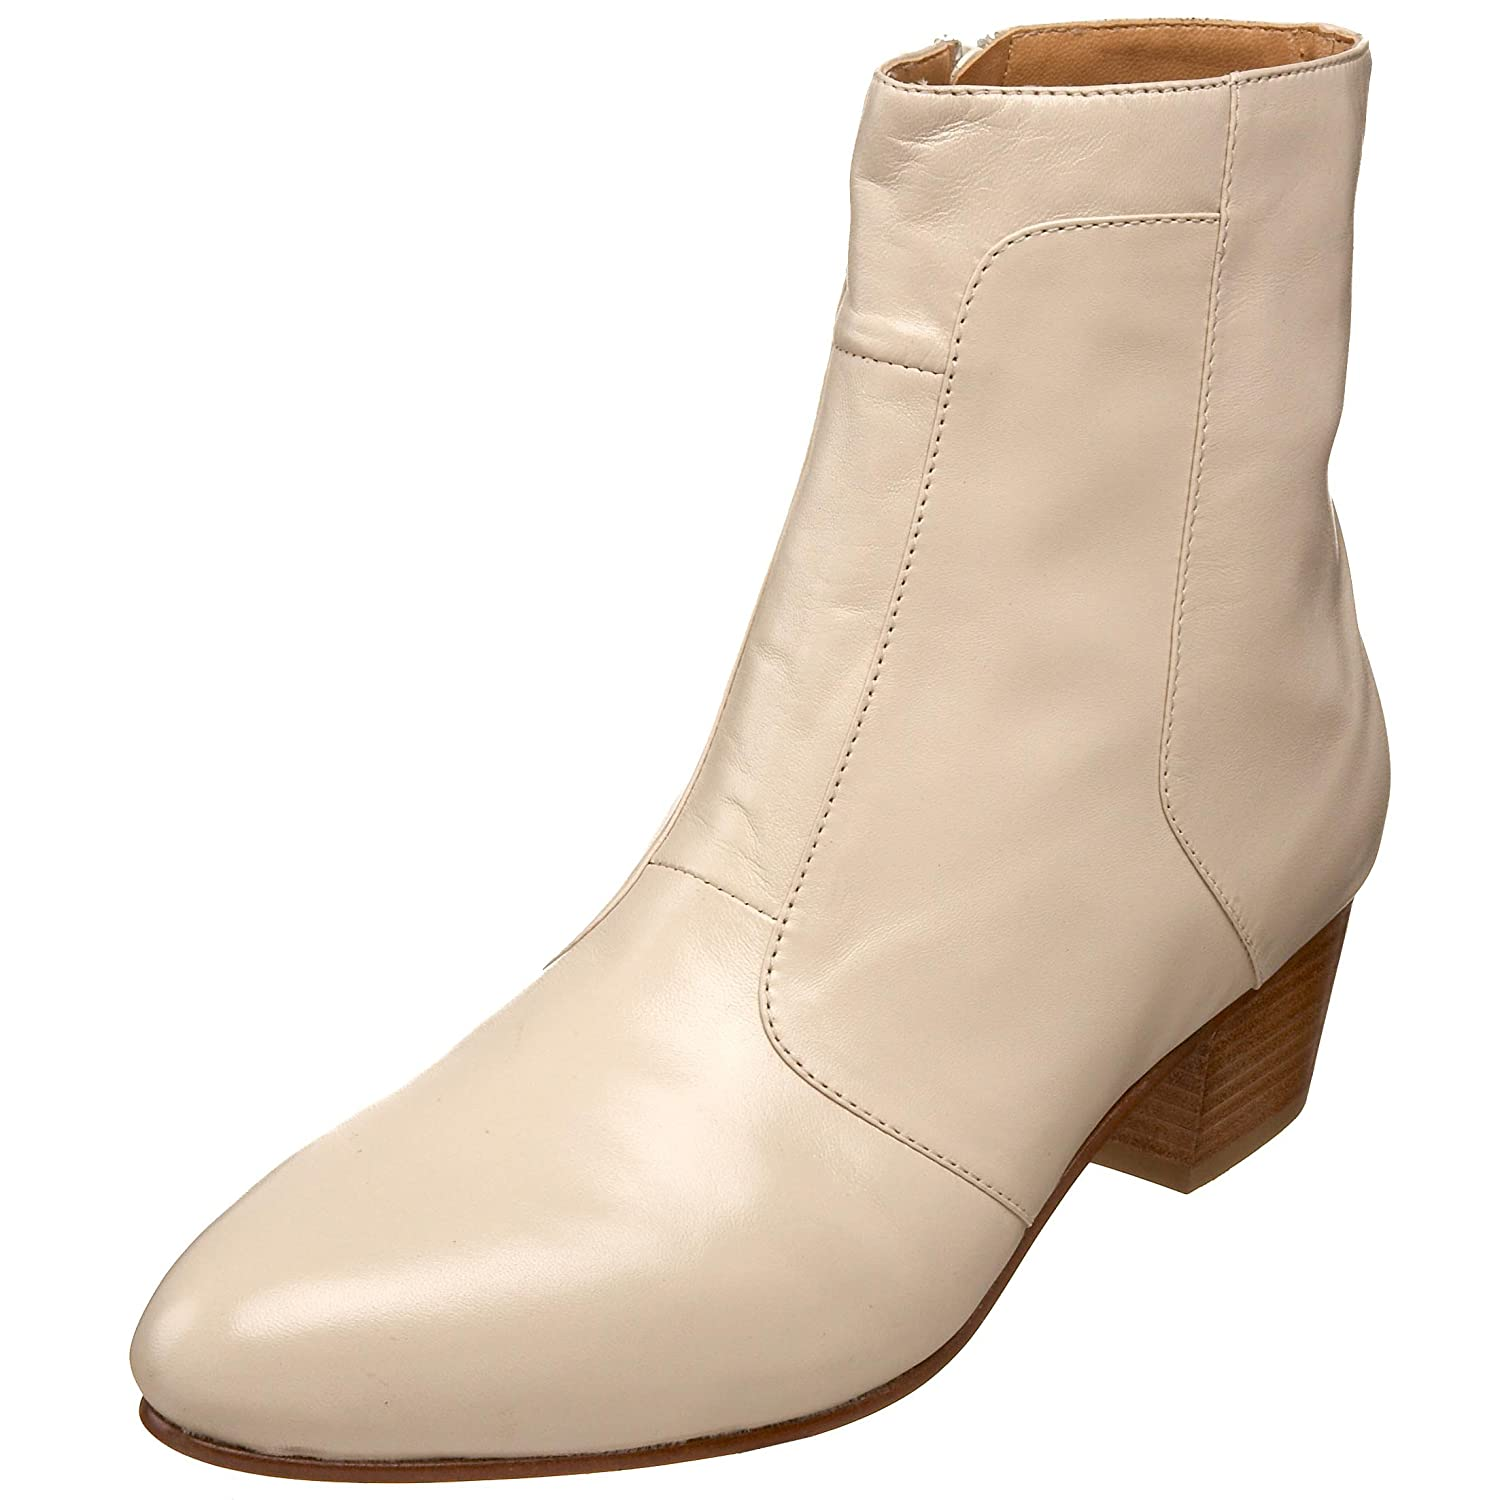 60s Mens Shoes | 70s Mens shoes – Platforms, Boots Giorgio Brutini Mens Pointed-Toe Dress Boot £42.59 AT vintagedancer.com